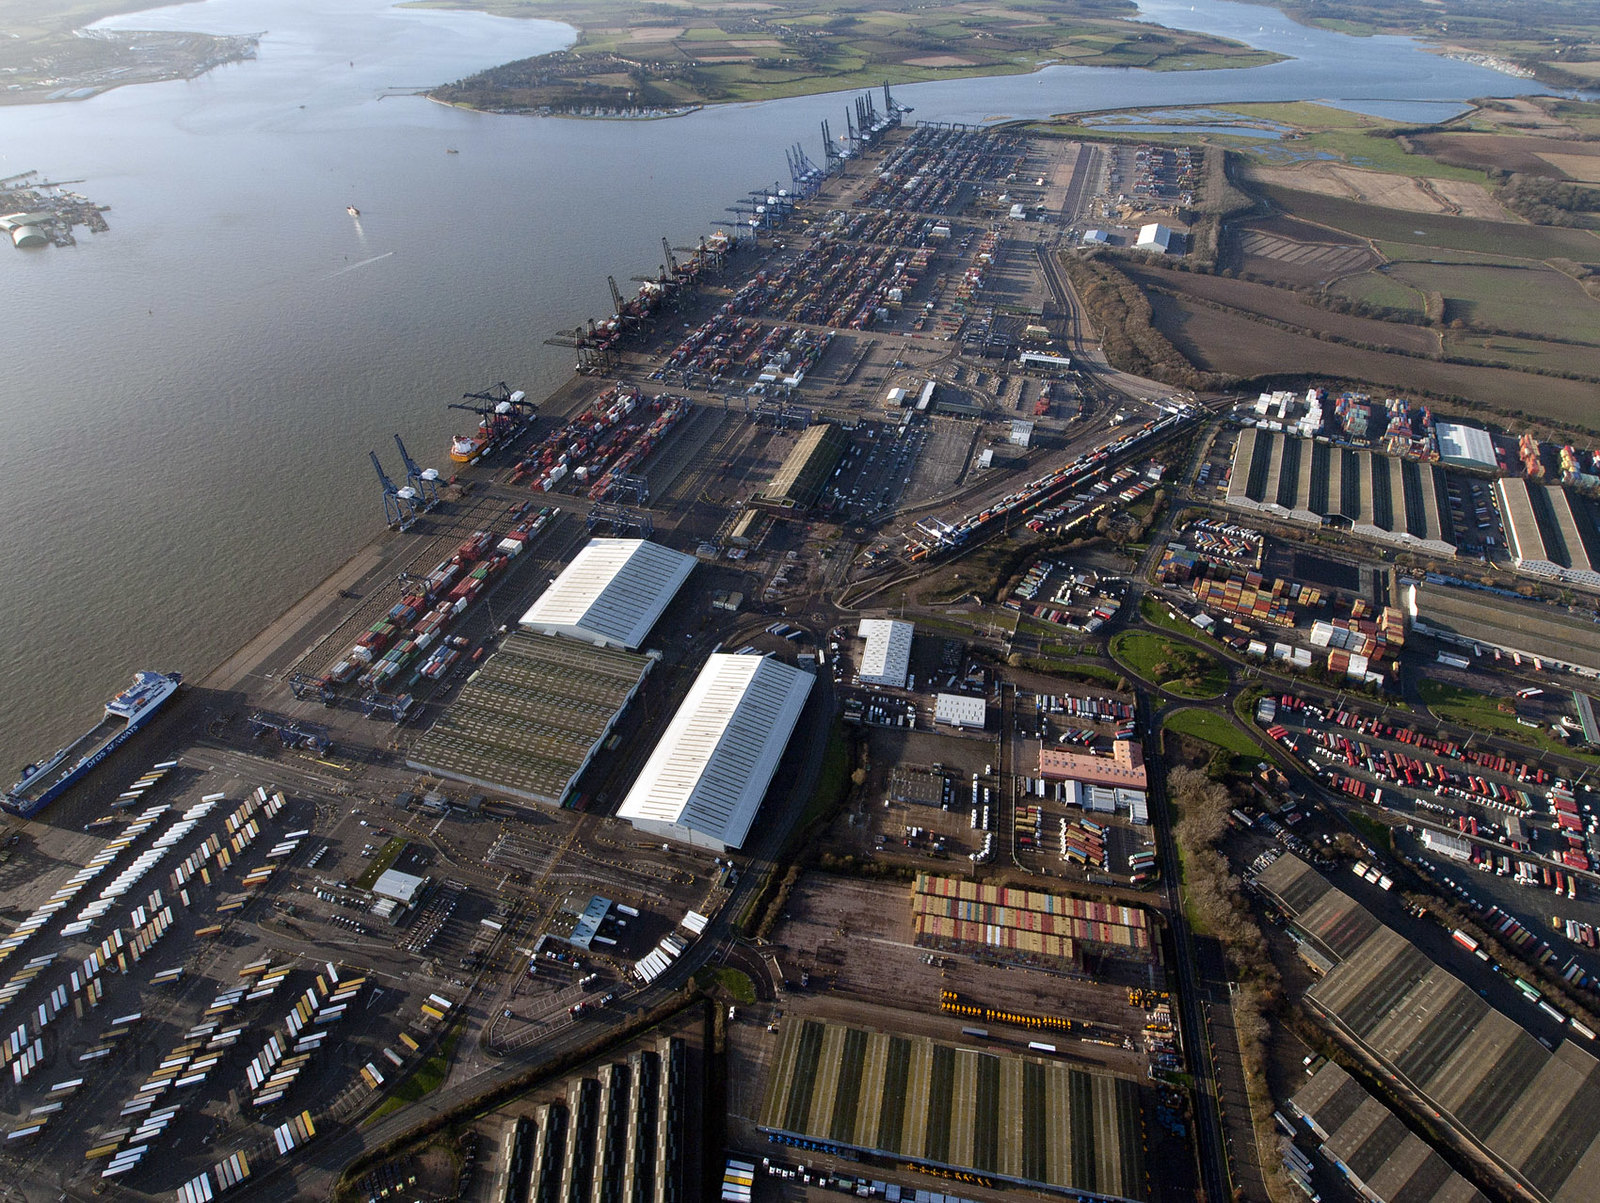 Driver shortage sees ships turned away from clogged-up Felixstowe Port